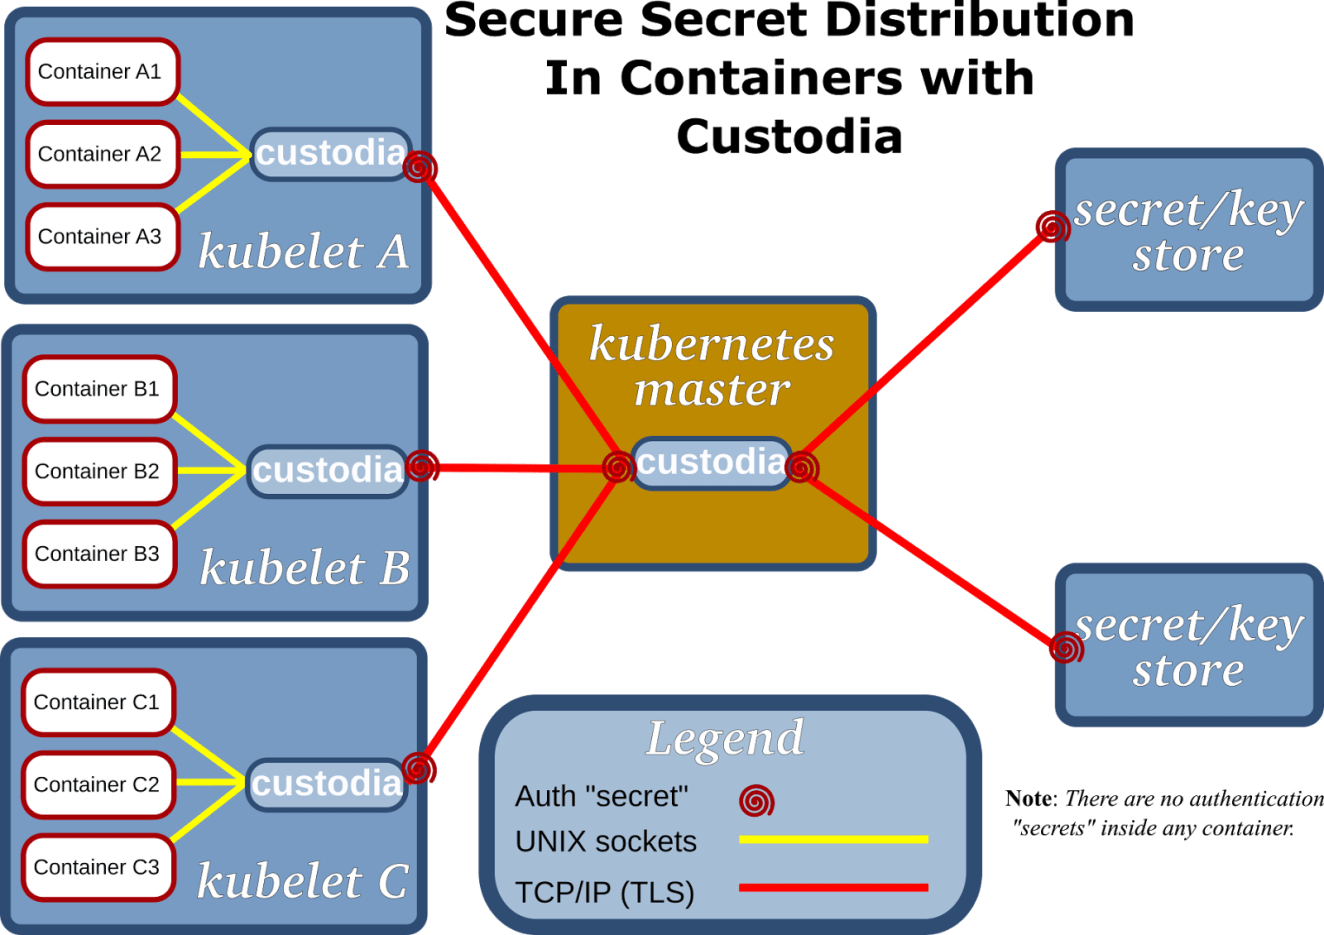 CustodiaWithContainers.png